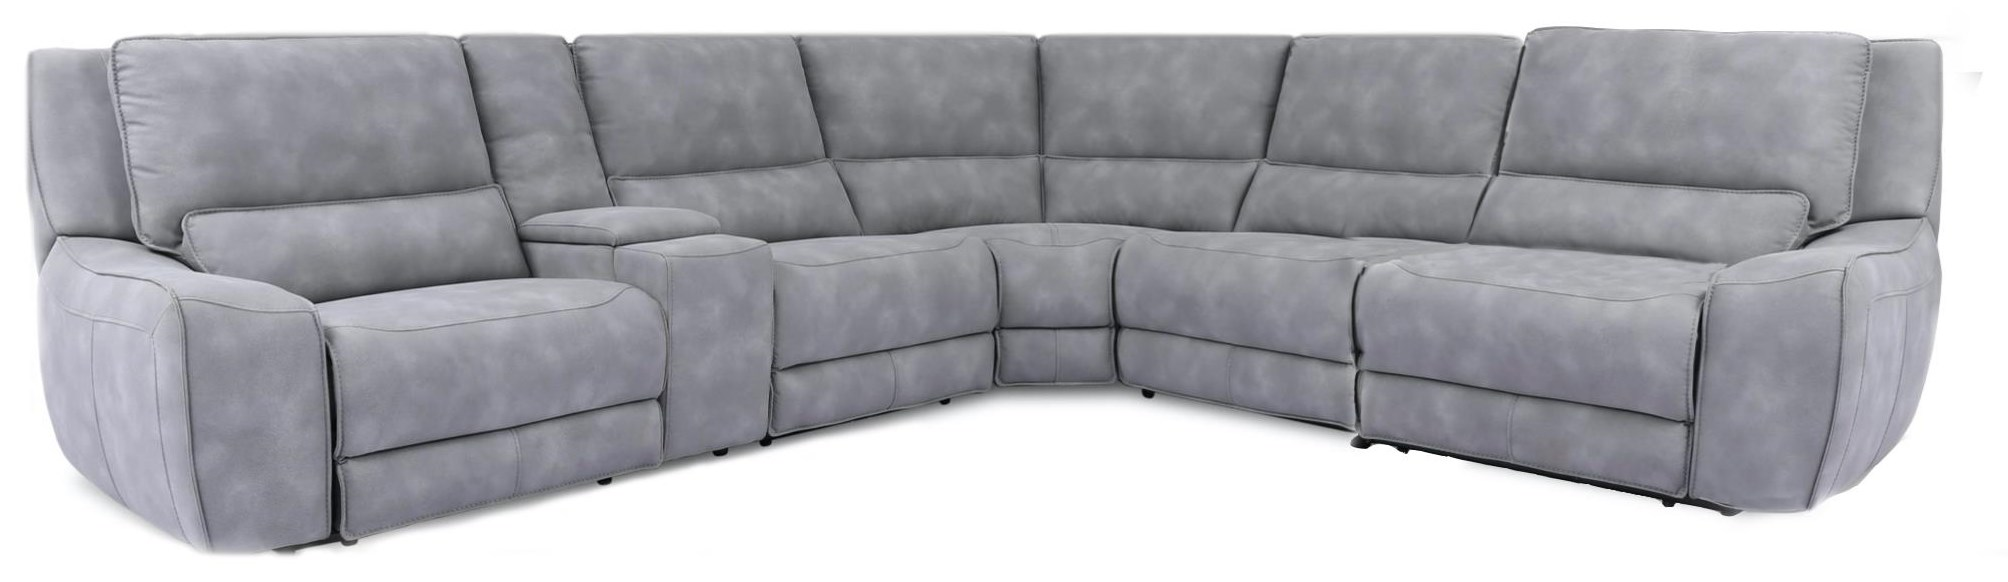 90027 6-Piece Power Reclining Sectional by Cheers at Beck's Furniture